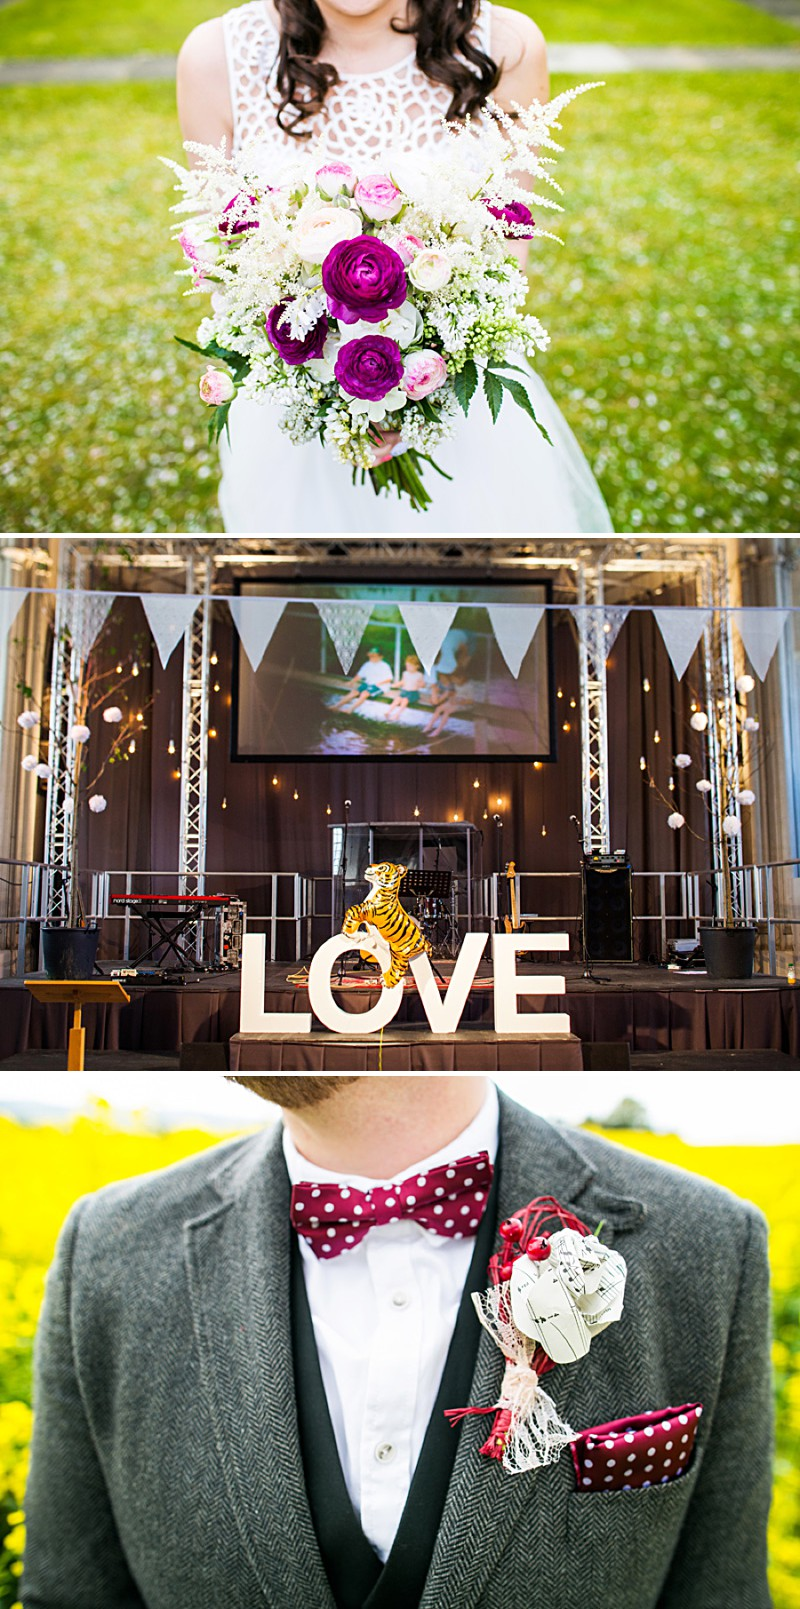 A Bohemian bride with tweed suited groom. A Brighton ceremony and reception with handmade pizza and ice cream. Wedding dress by Debenhams and photography by Navy Blur_0001